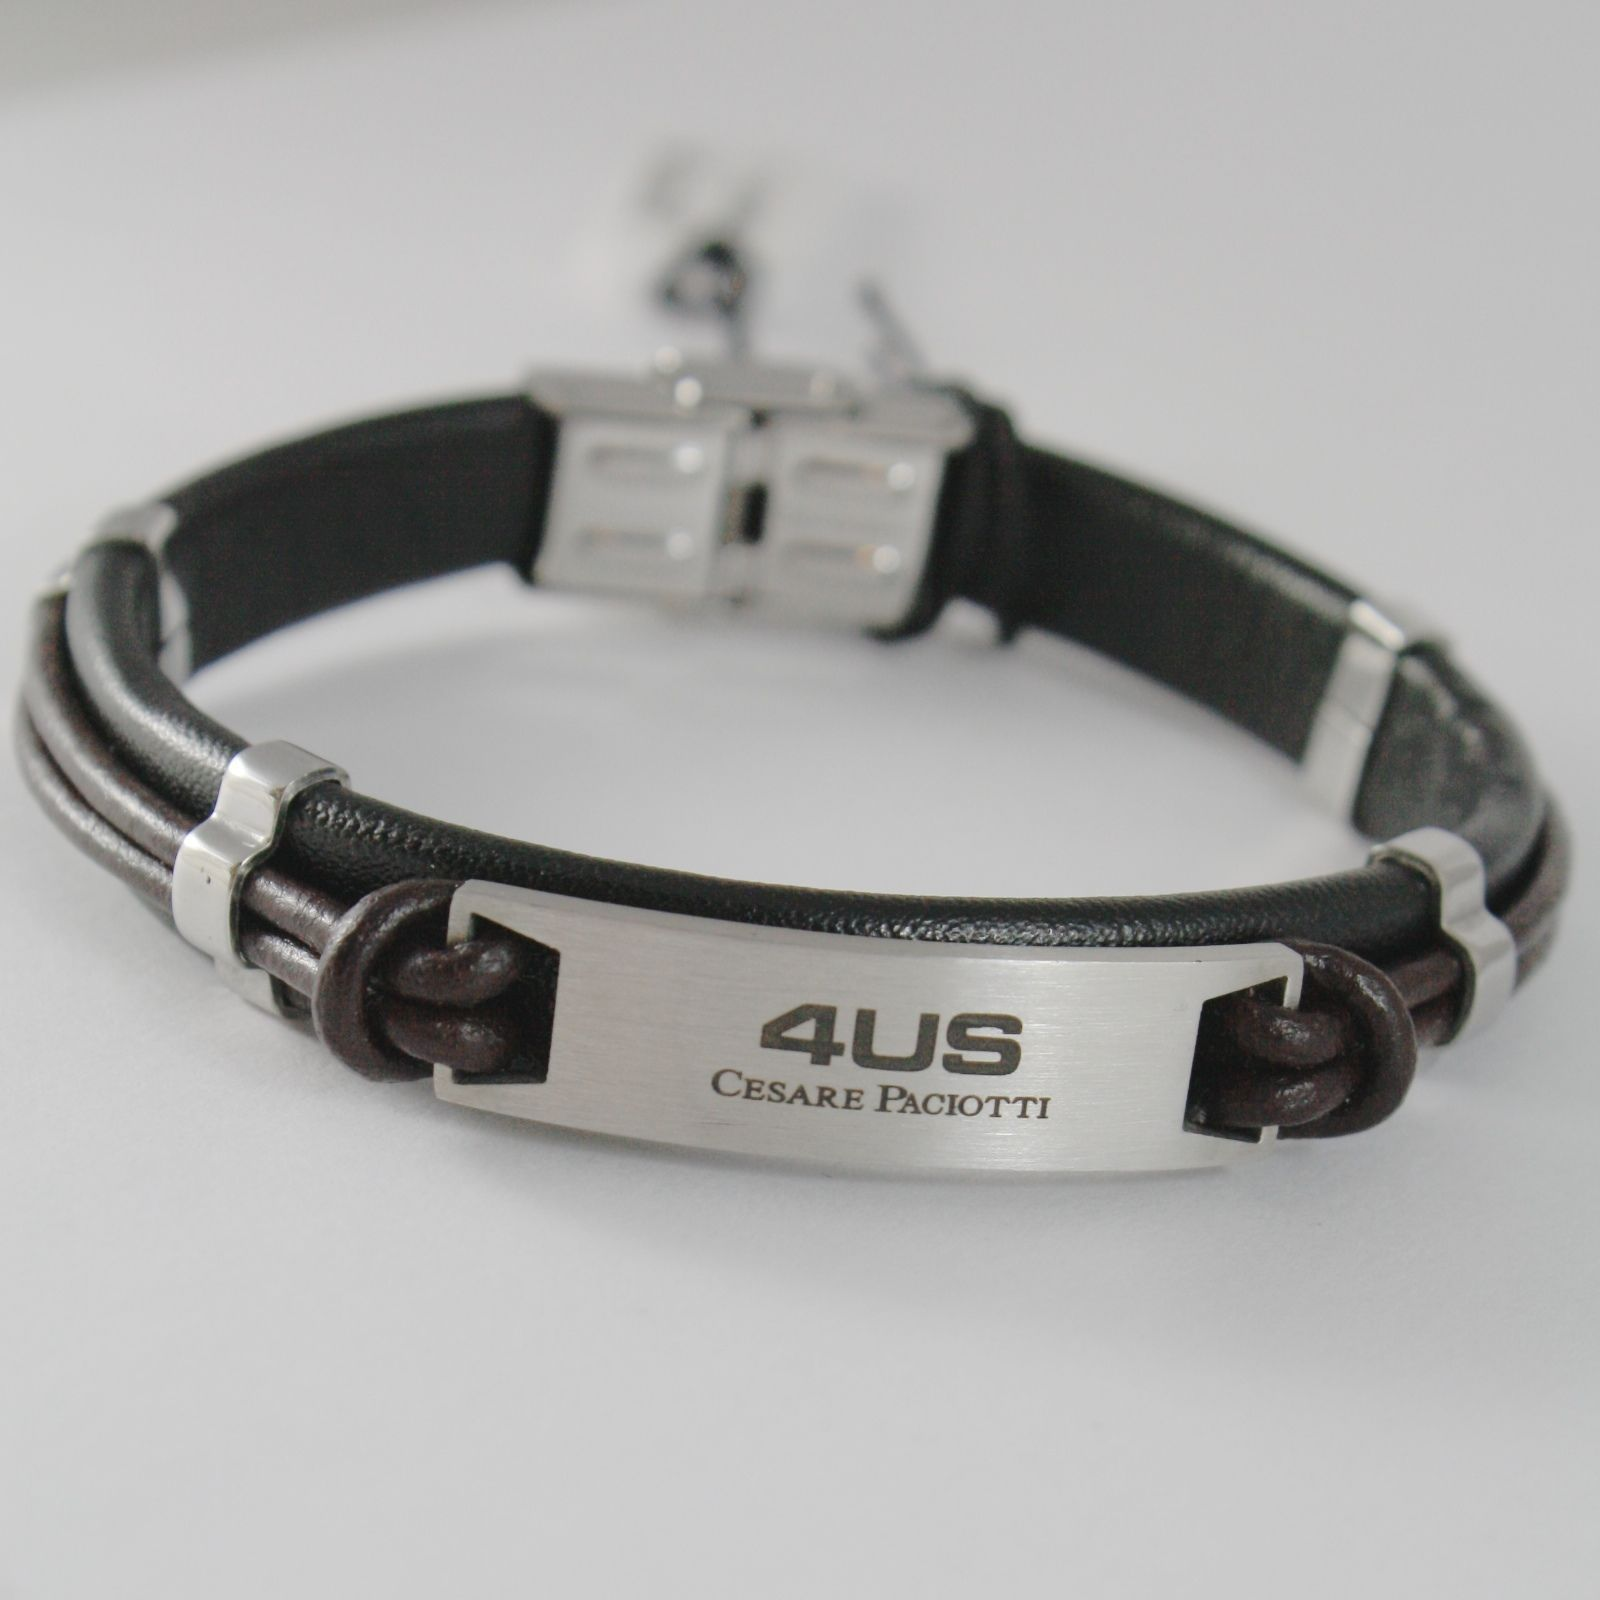 STAINLESS STEEL PLATE BRACELET WITH BROWN BLACK LEATHER, 4US BY CESARE PACIOTTI